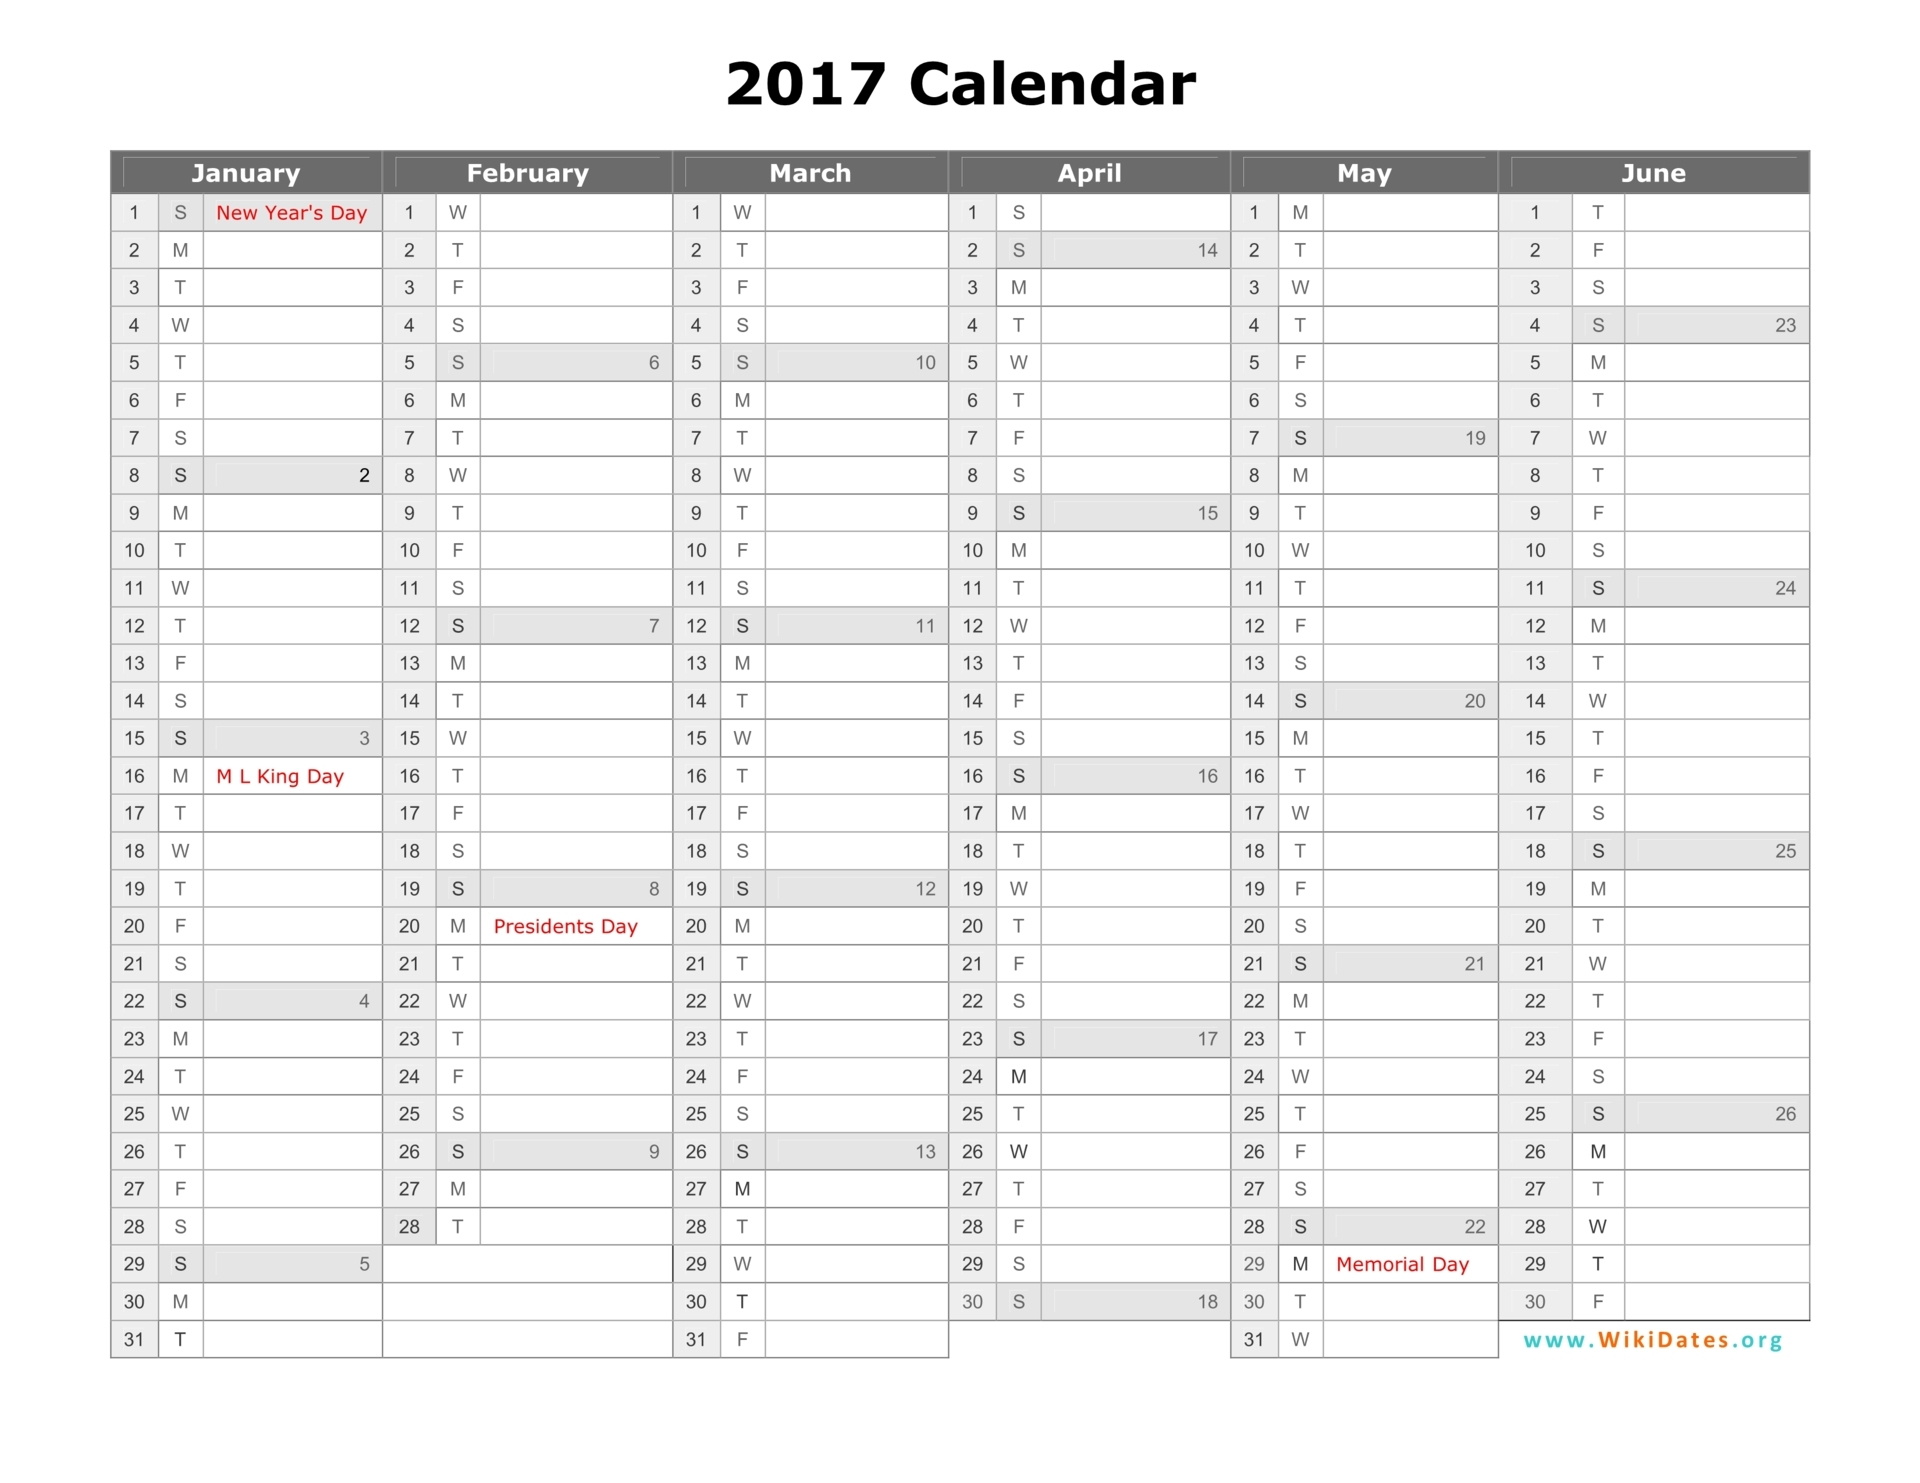 annual calendar of events template - 2016 yearly calendar template 09 free printable templates